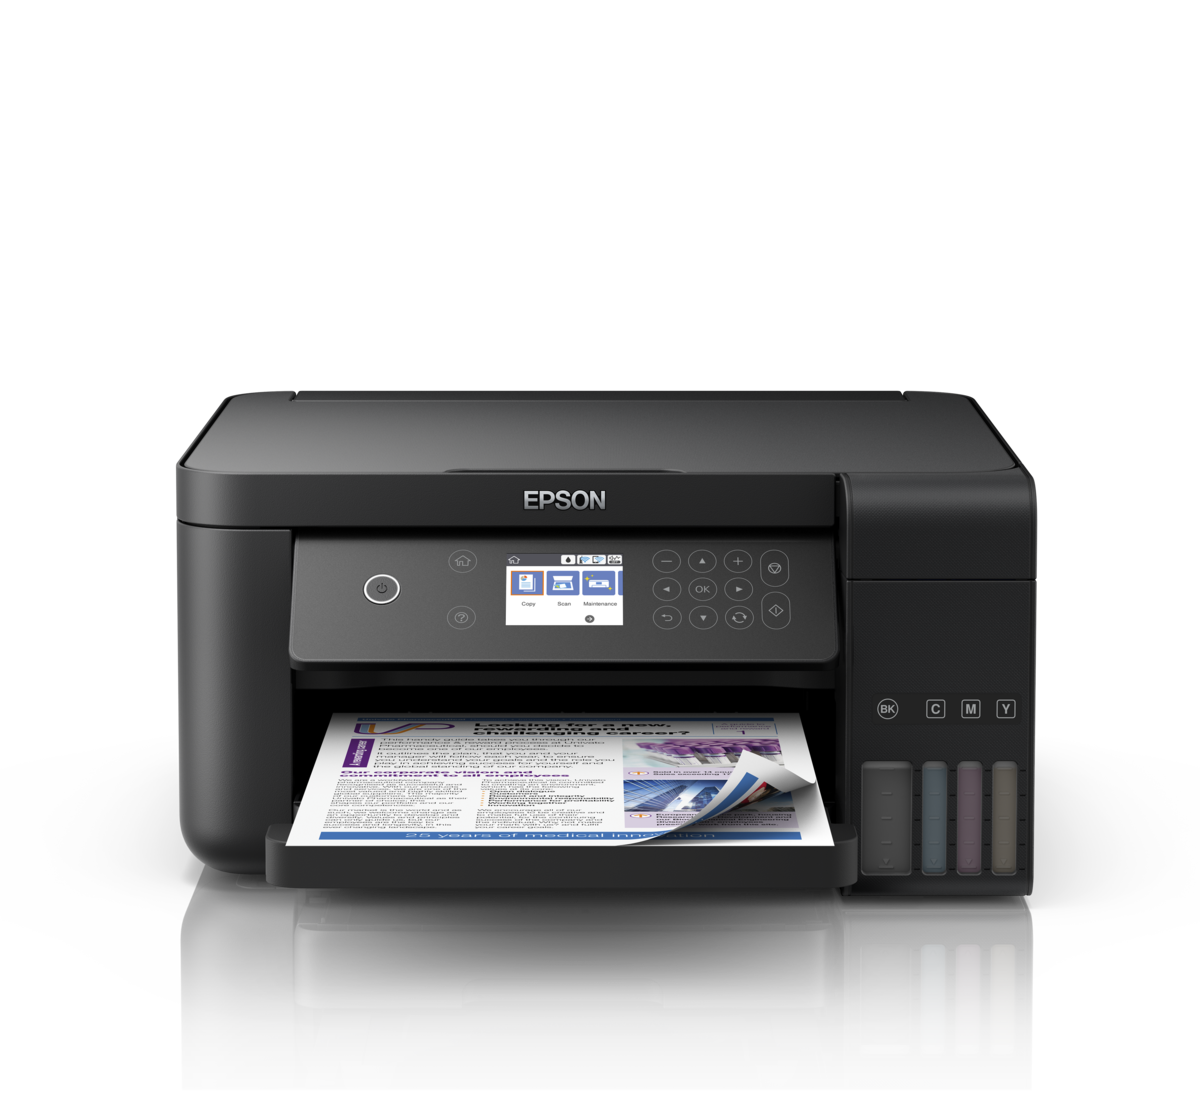 Epson L6160 Wi-Fi Duplex All-in-One Ink Tank Printer